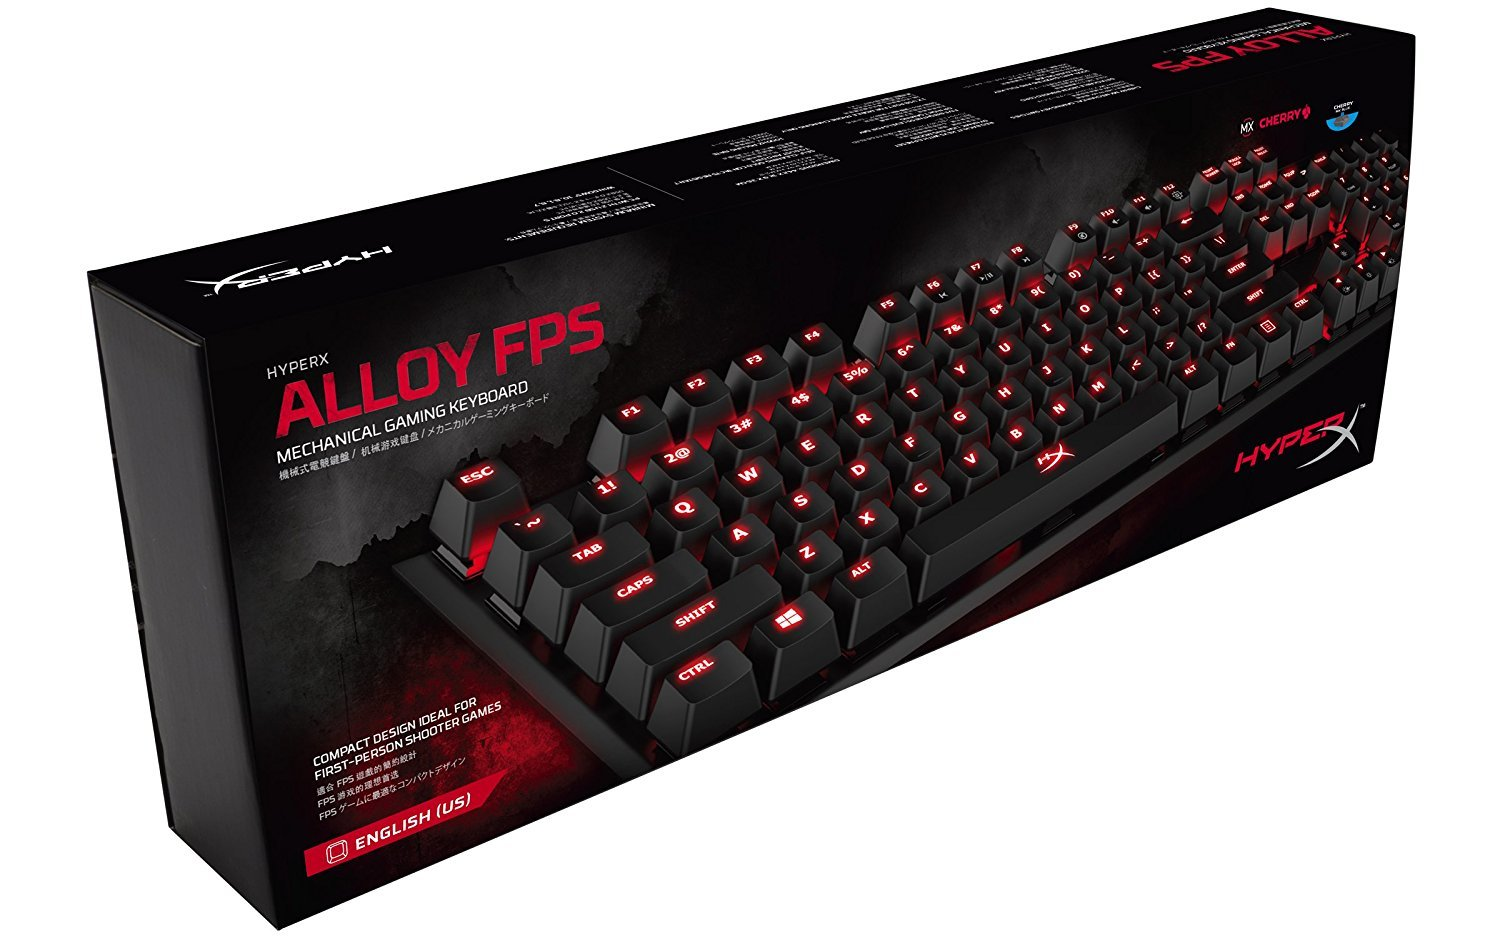 HyperX Alloy FPS Mechanical Gaming Keyboard (Cherry MX Blue) for PC image